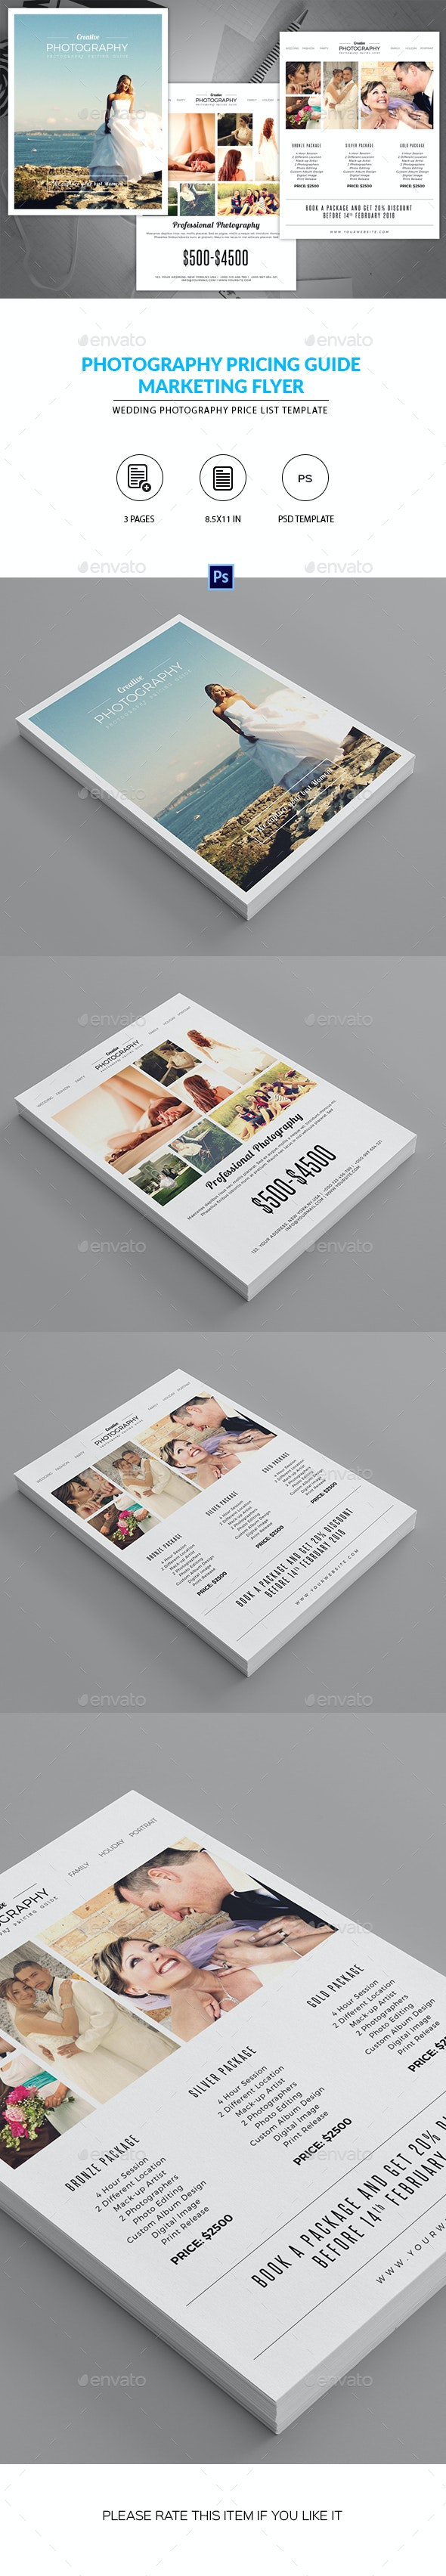 Minimal Photography Price List Template - Corporate Flyers